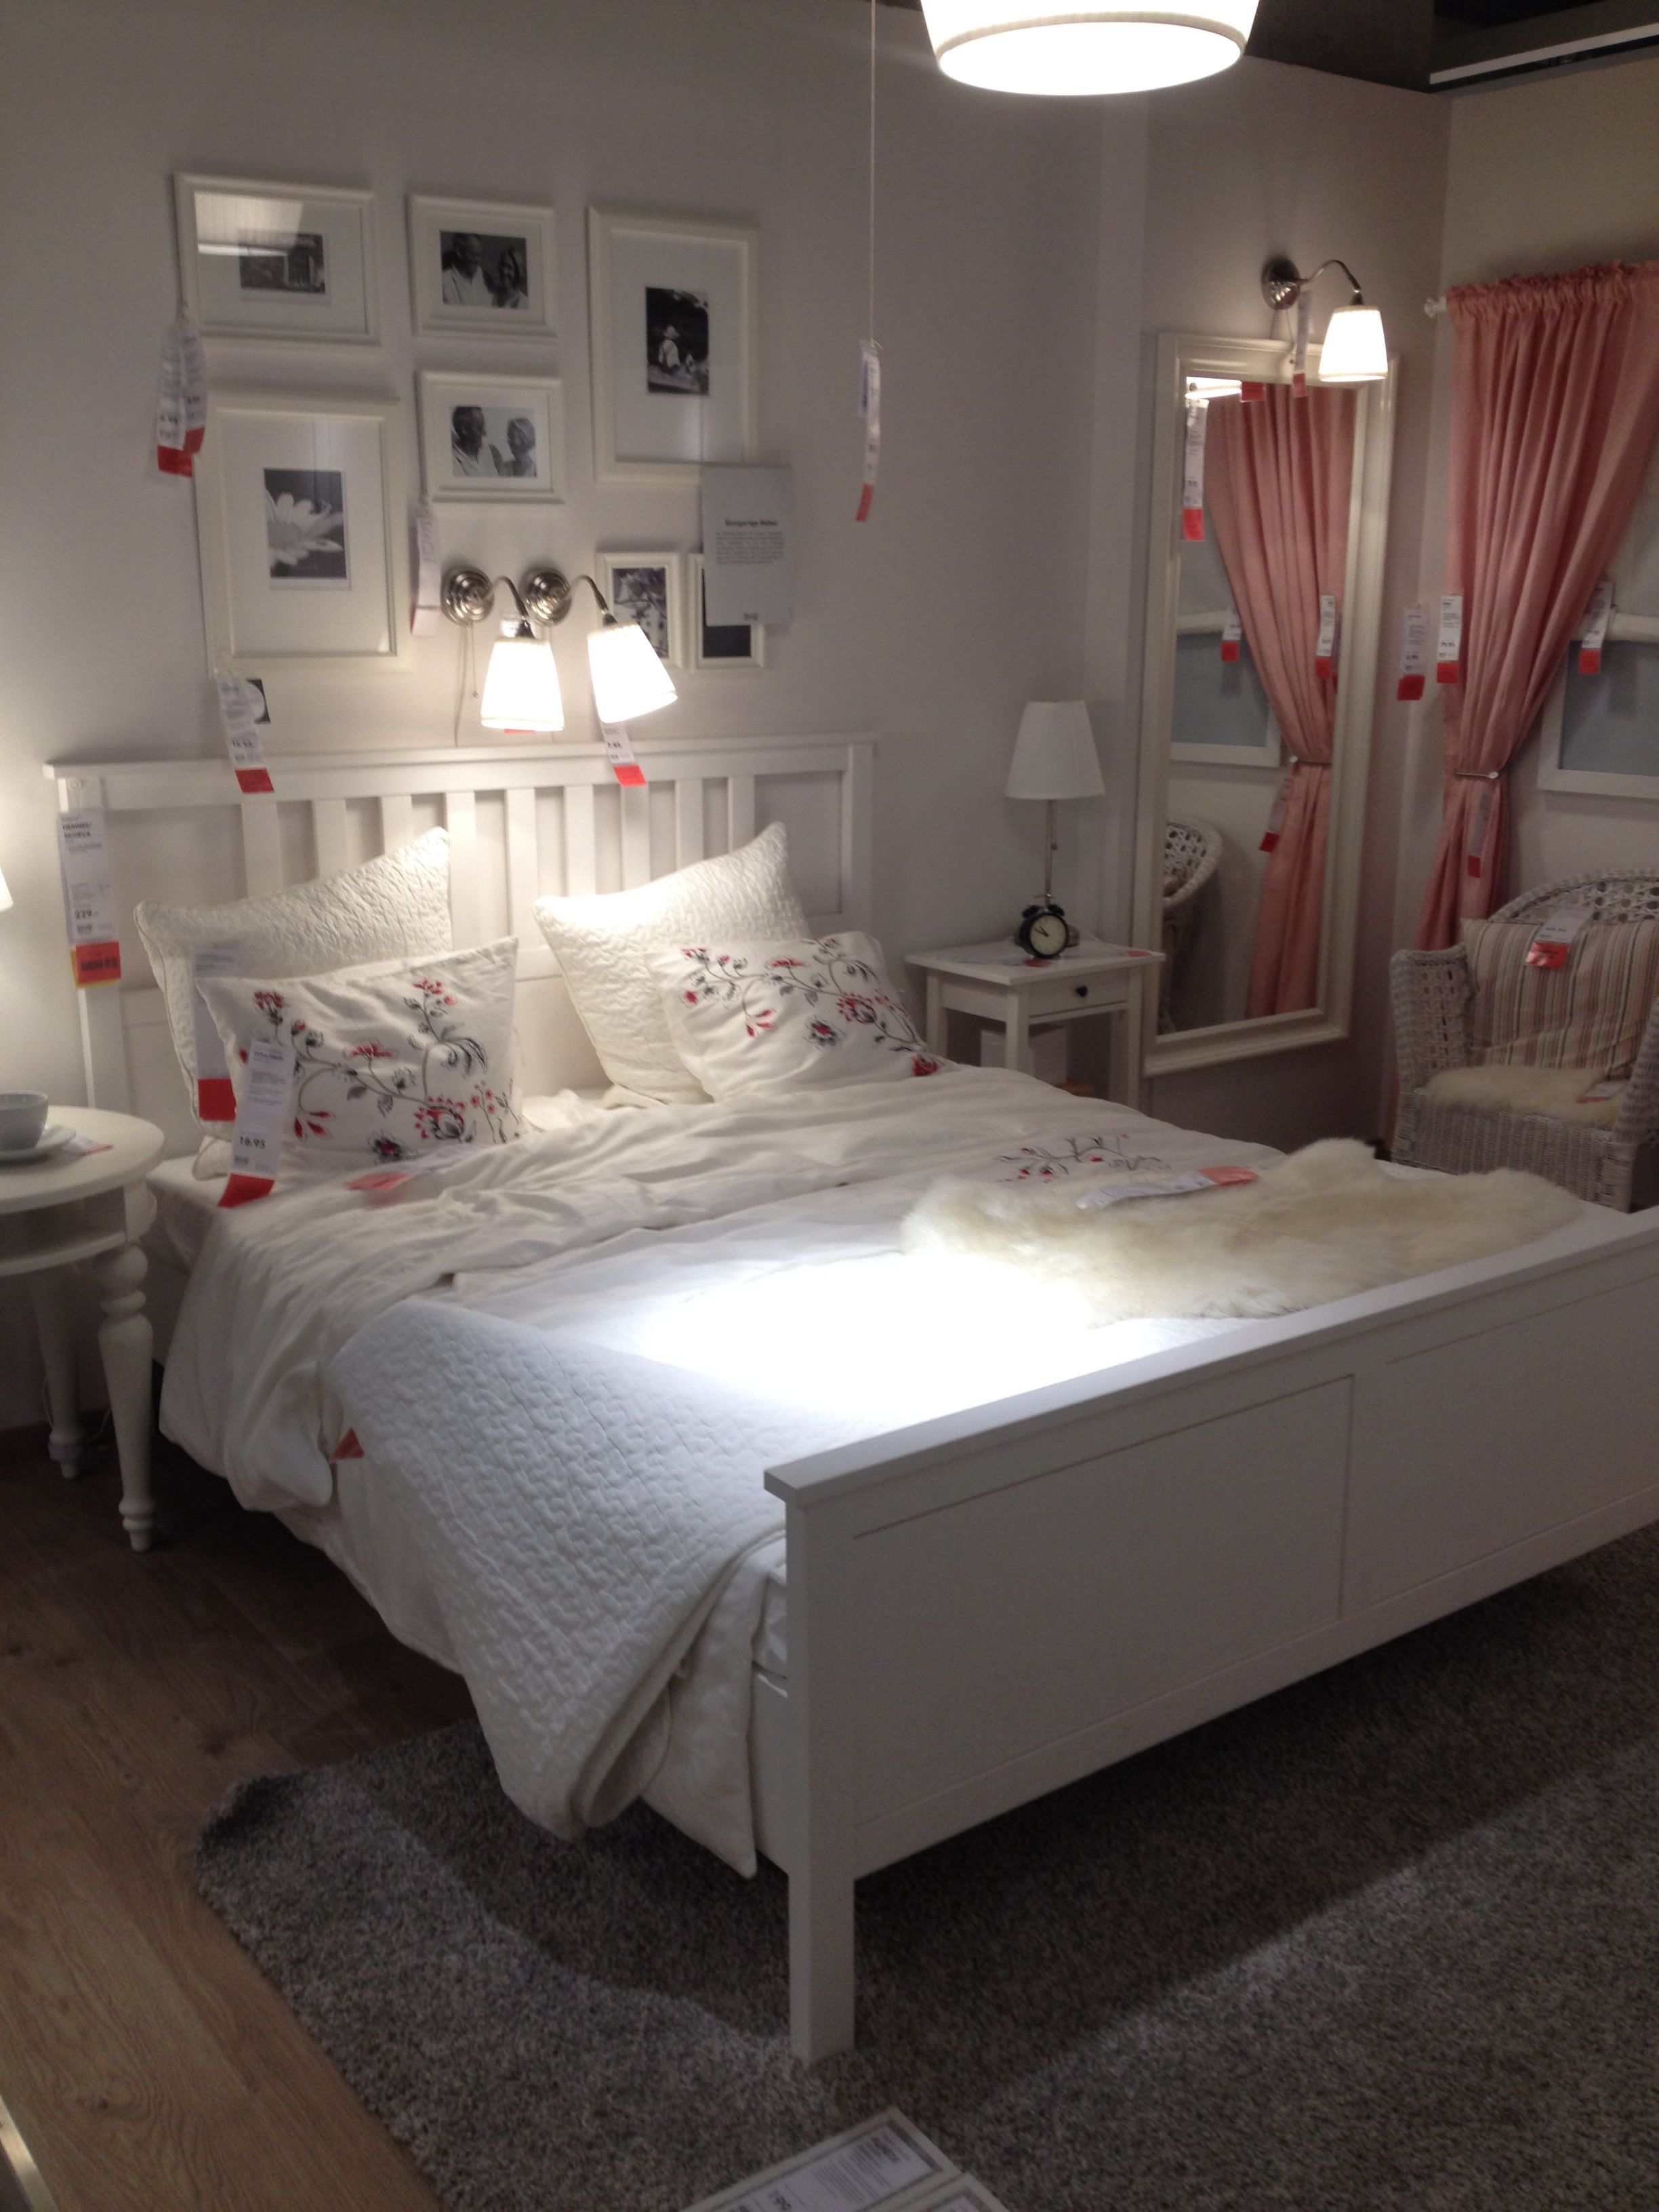 White Ikea Hemnes Bed . Next Project : ) White Bedroom Furniture Ikea,  Scandi